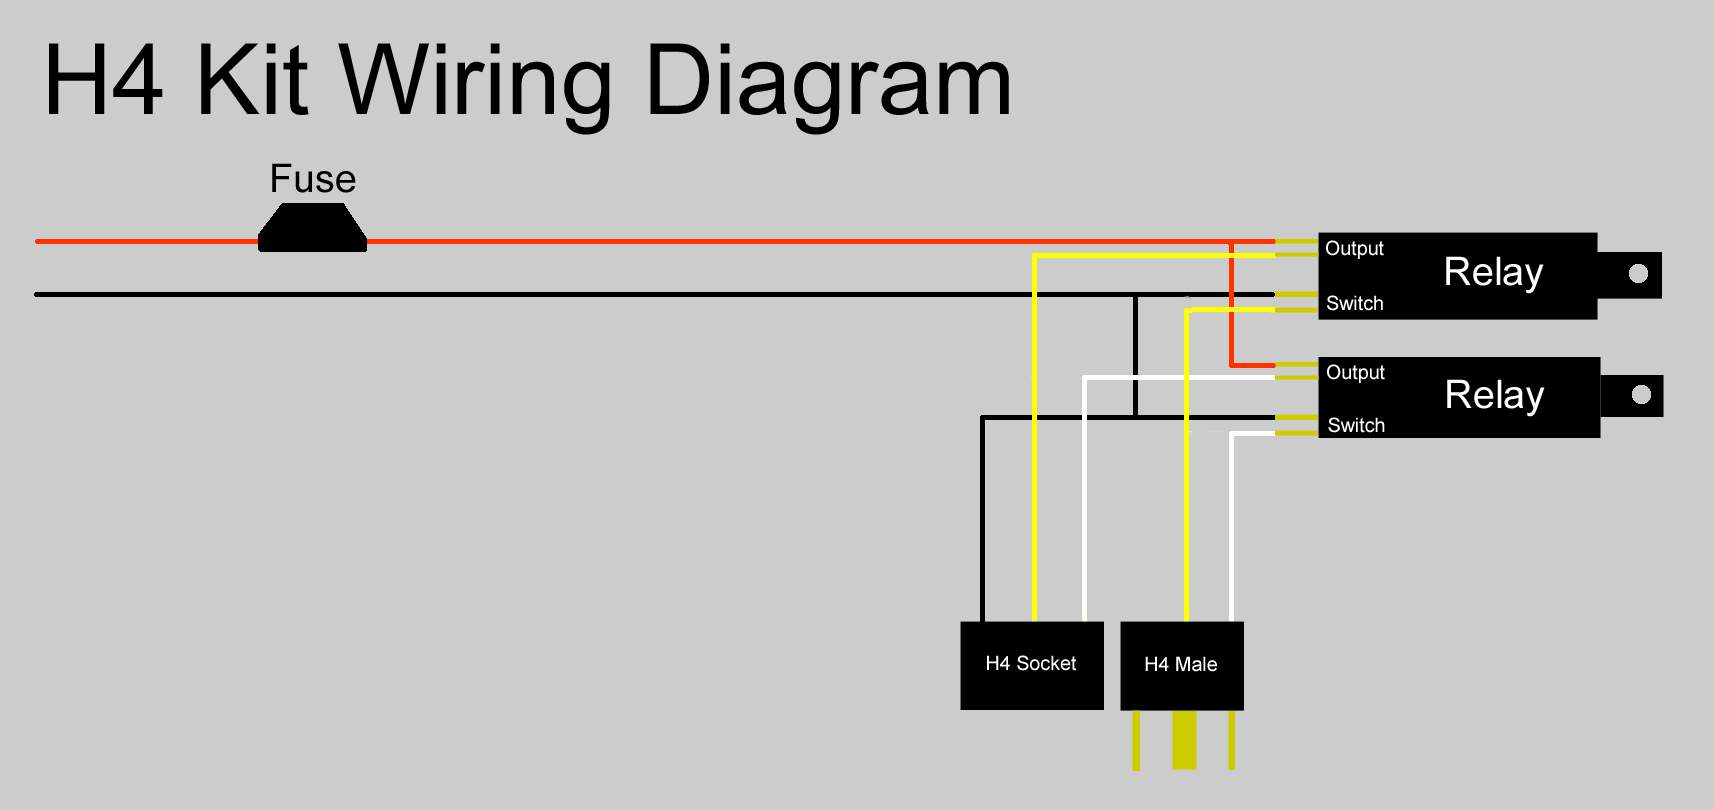 h4 socket wiring diagram   24 wiring diagram images